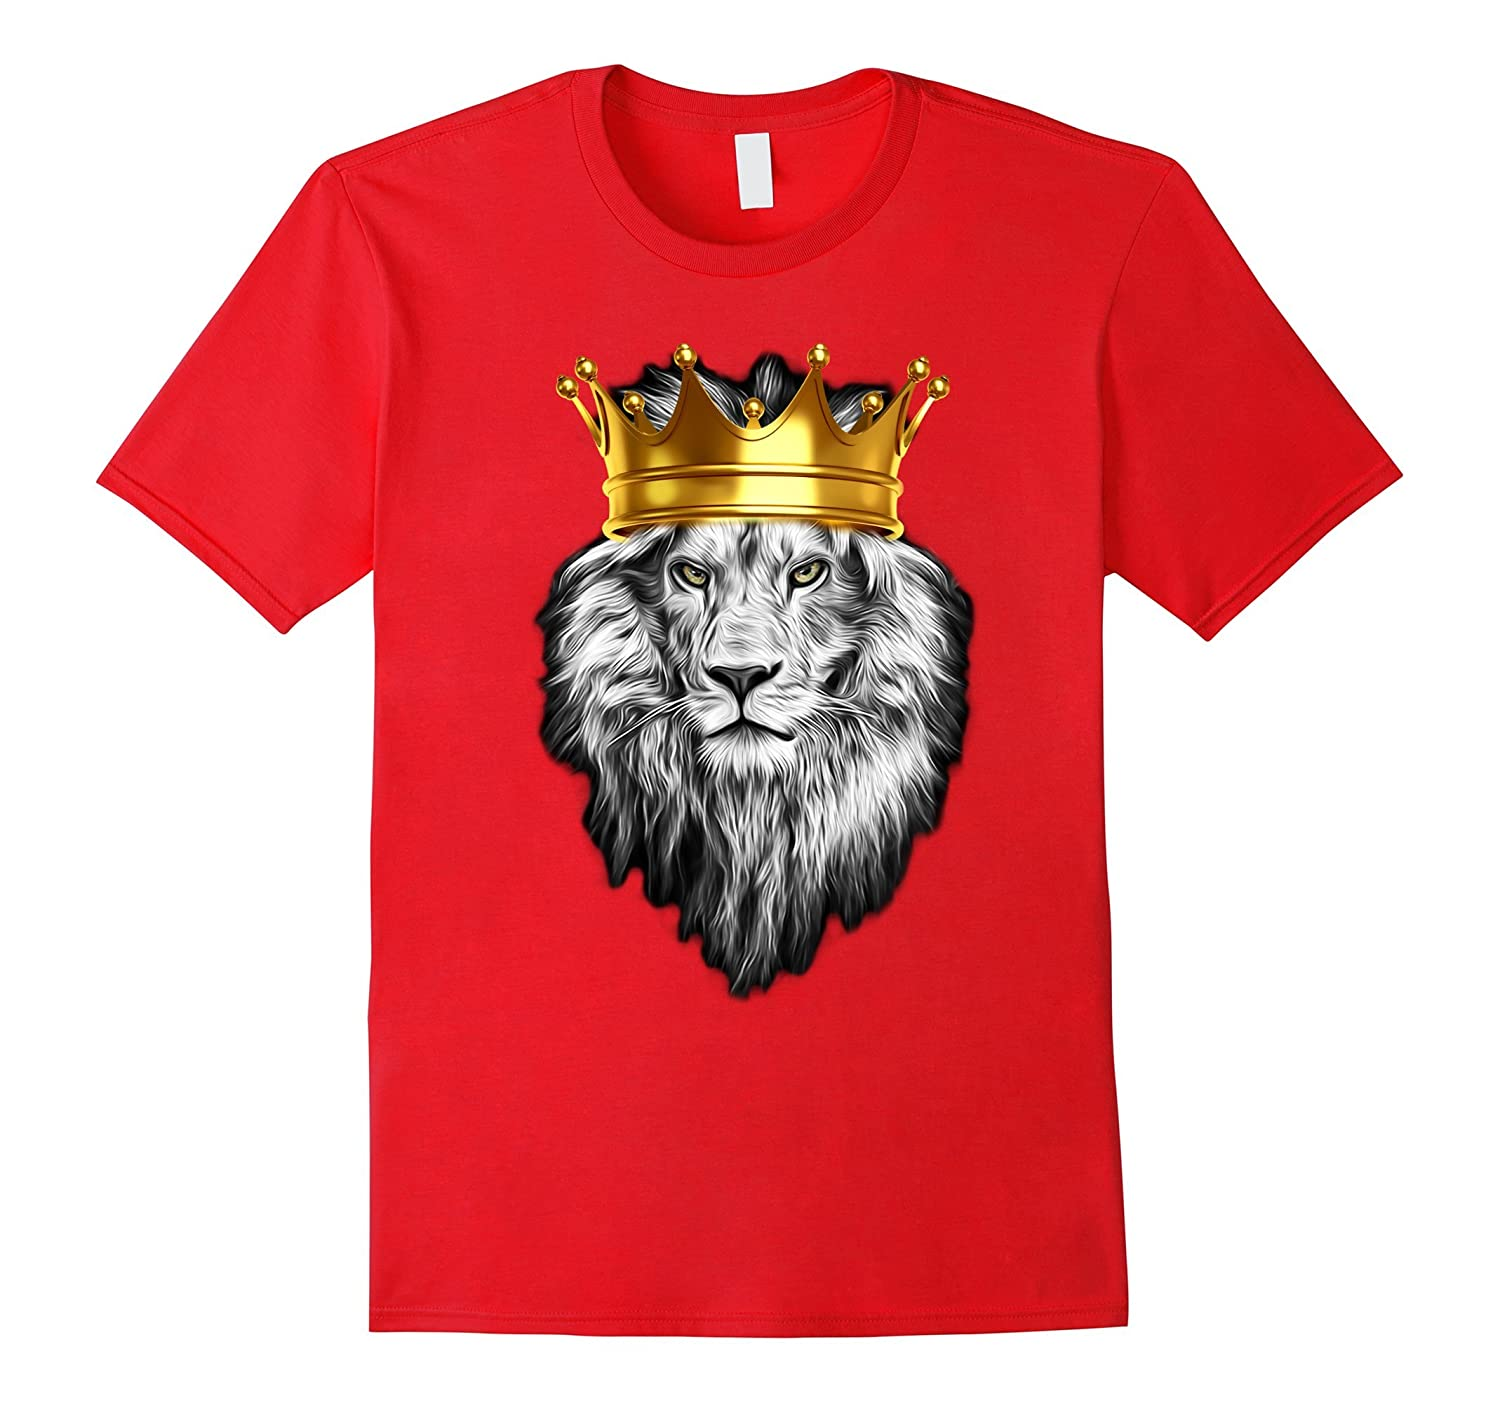 KING LION AWESOME SUPER TSHIRT BY KOPA21 DESIGNS !!-fa